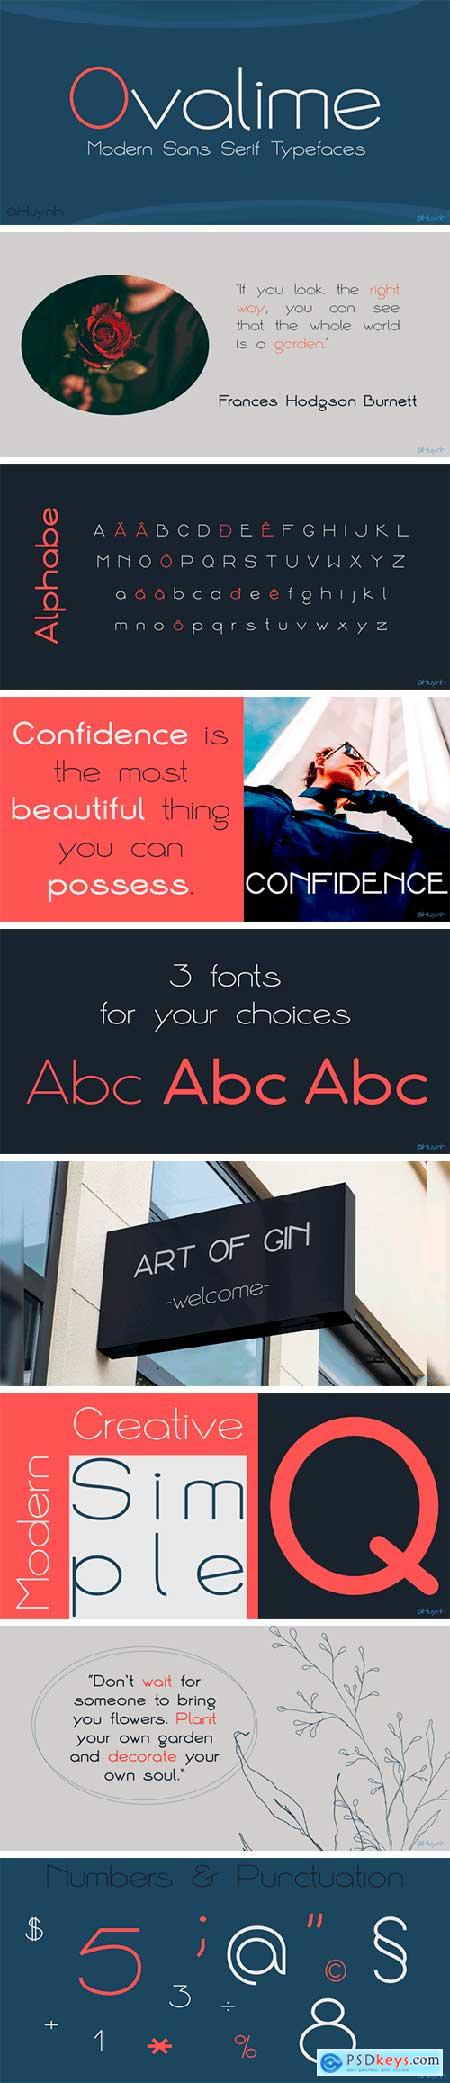 Ovalime Font Family